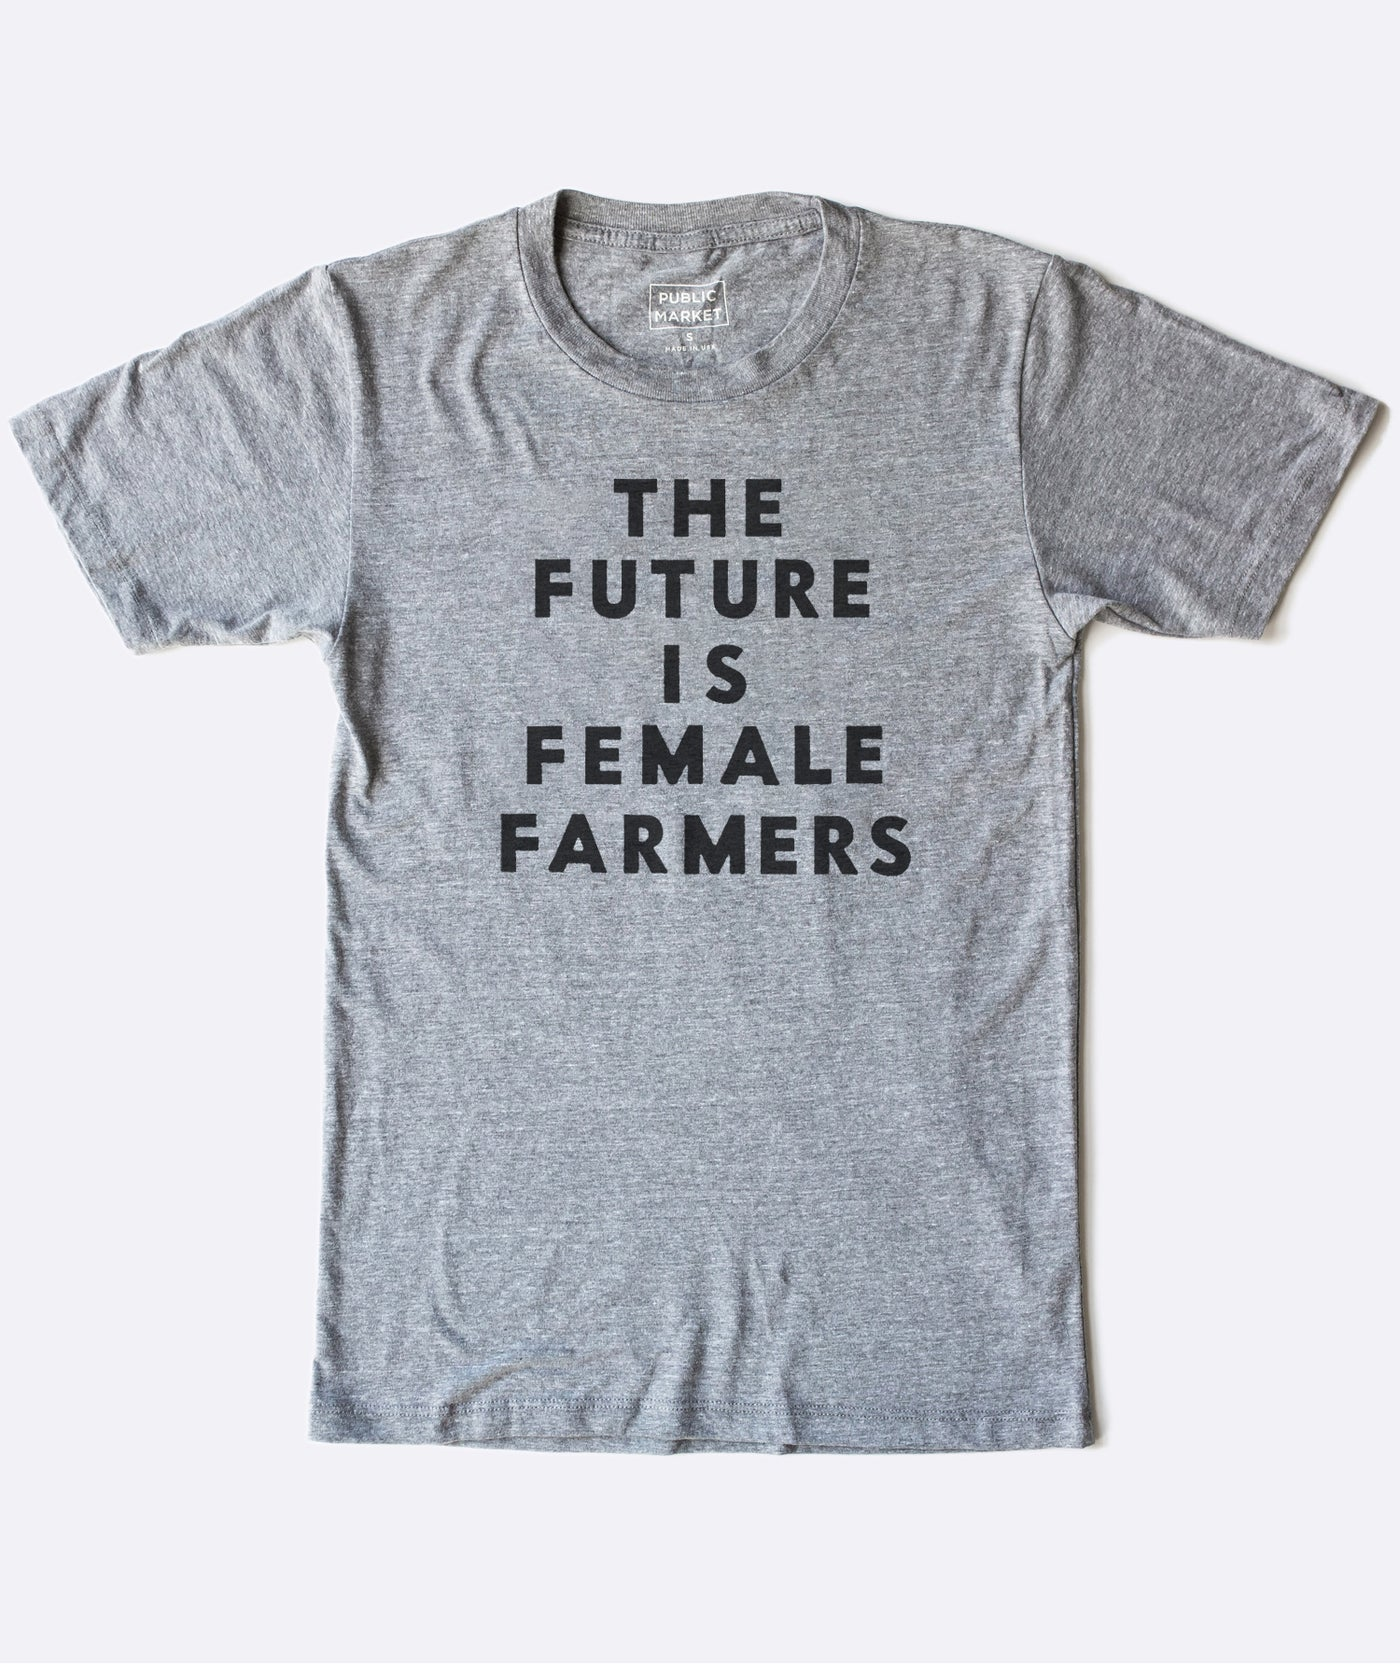 The Future is Female Farmers in Grey